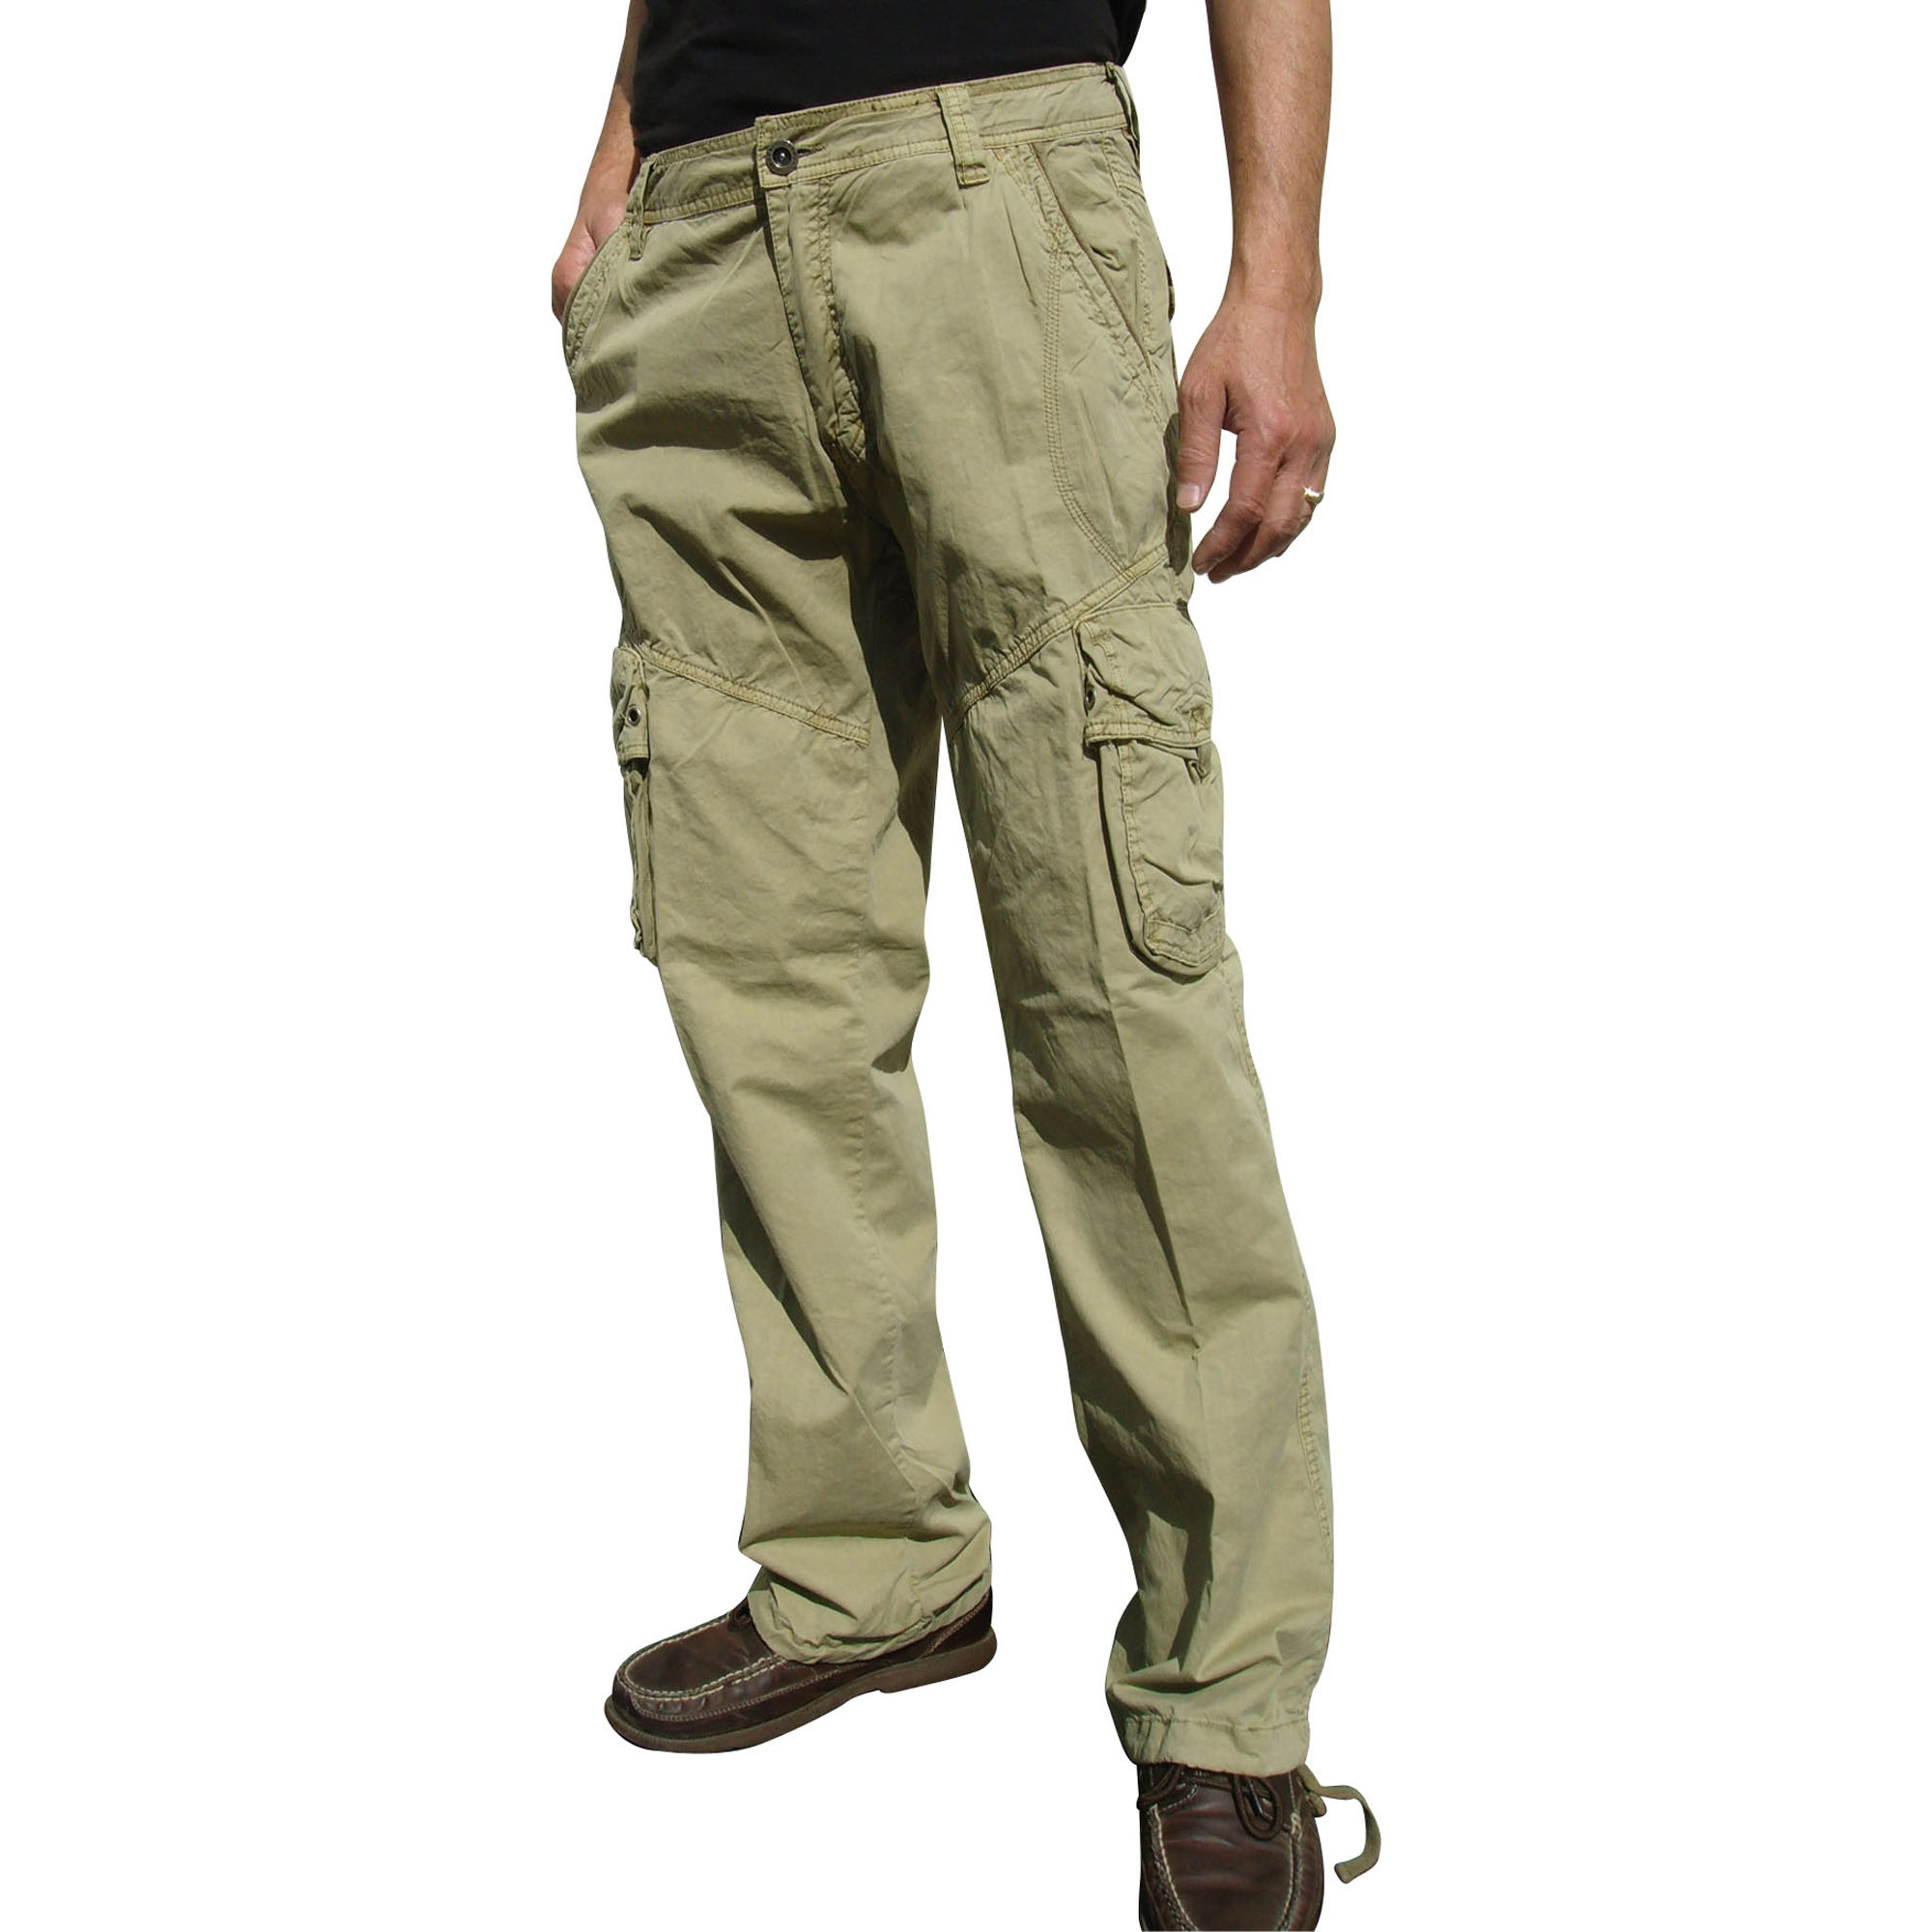 Shop Lacoste's wide selection of mens pants, jeans, shorts, khakis, chinos, and more. Free shipping on orders over $ Shop Lacoste's wide selection of mens pants, jeans, shorts, khakis, chinos, and more. Free shipping on orders over $ LIFE IS A BEAUTIFUL SPORT What's New. Men's SPORT Colored Bands Taffeta Tennis Tracksuit (4 colors.